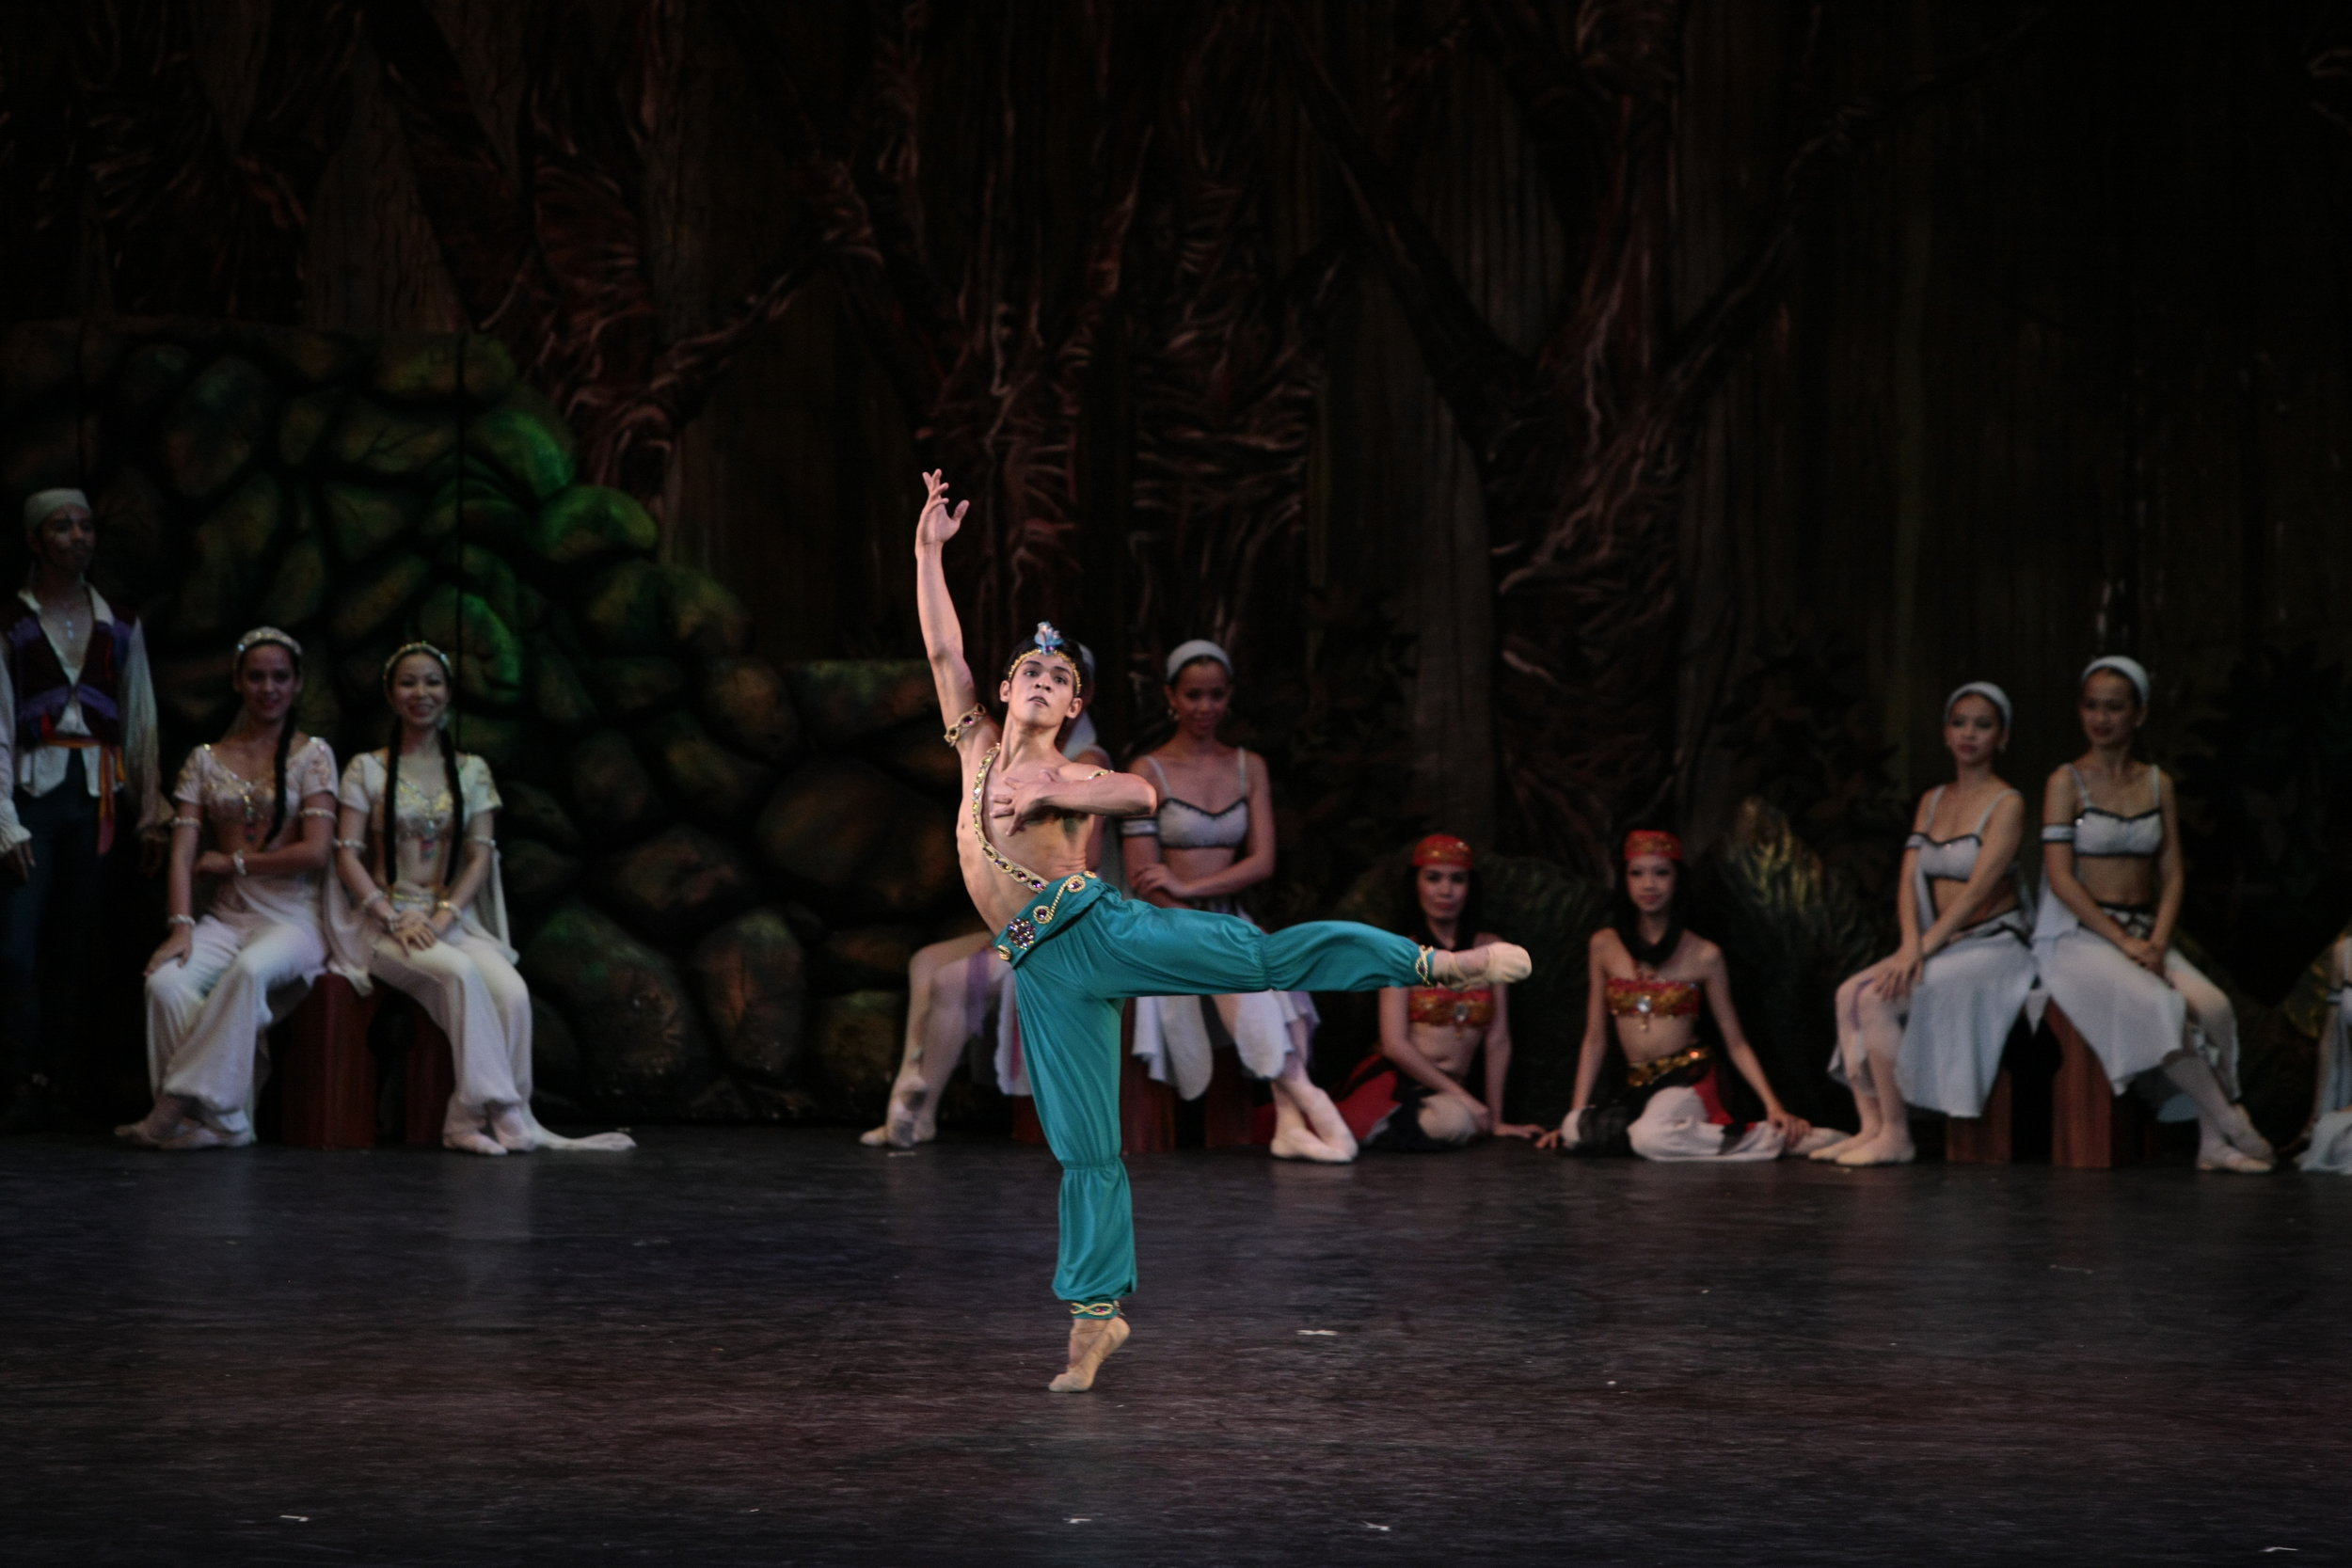 Since first dancing the Ali variation for a competition, Geri Francisco has been cast in the same role in every  Le Corsaire  production of Ballet Manila since joining the company in 2003. Photo by Ocs Alvarez